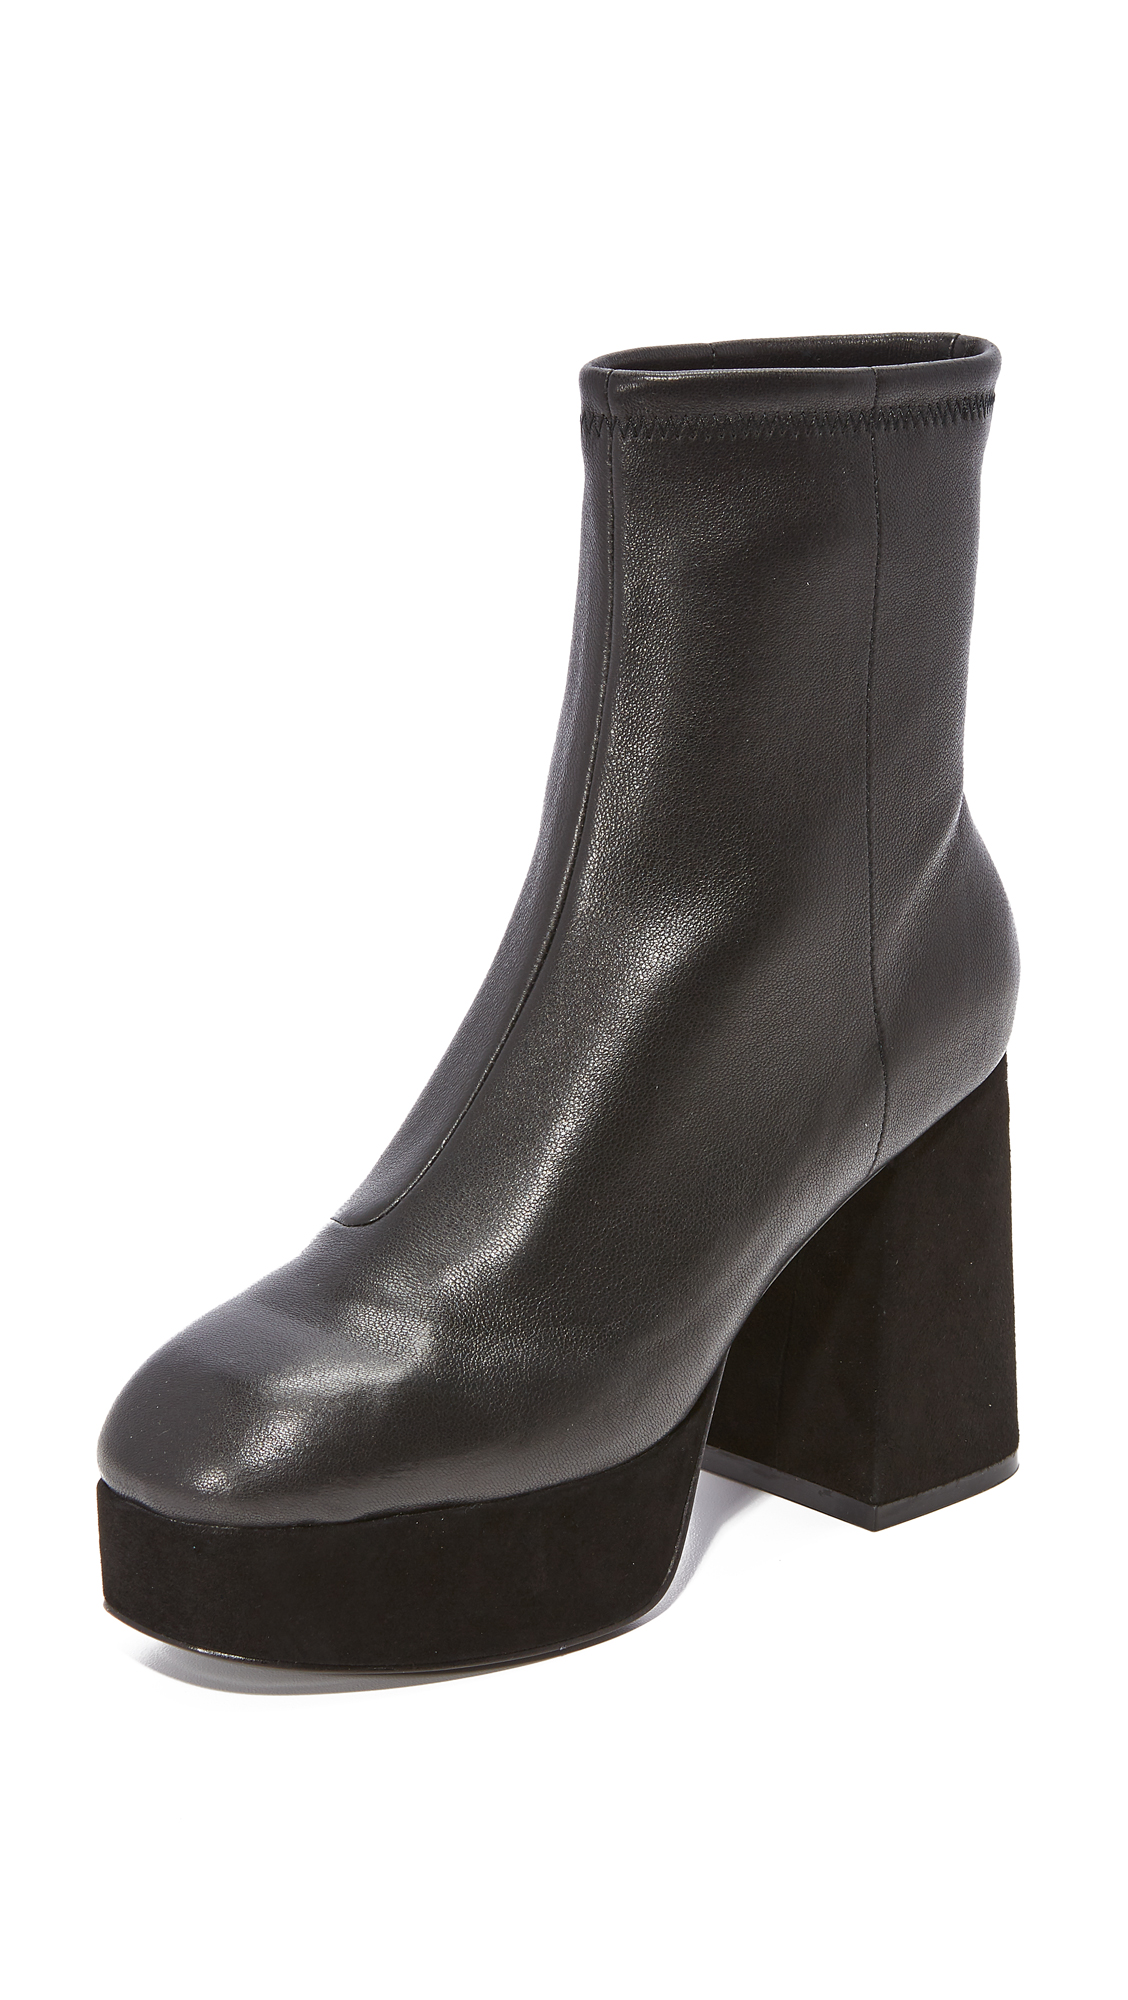 Opening Ceremony Carmen Leather Boots - Black